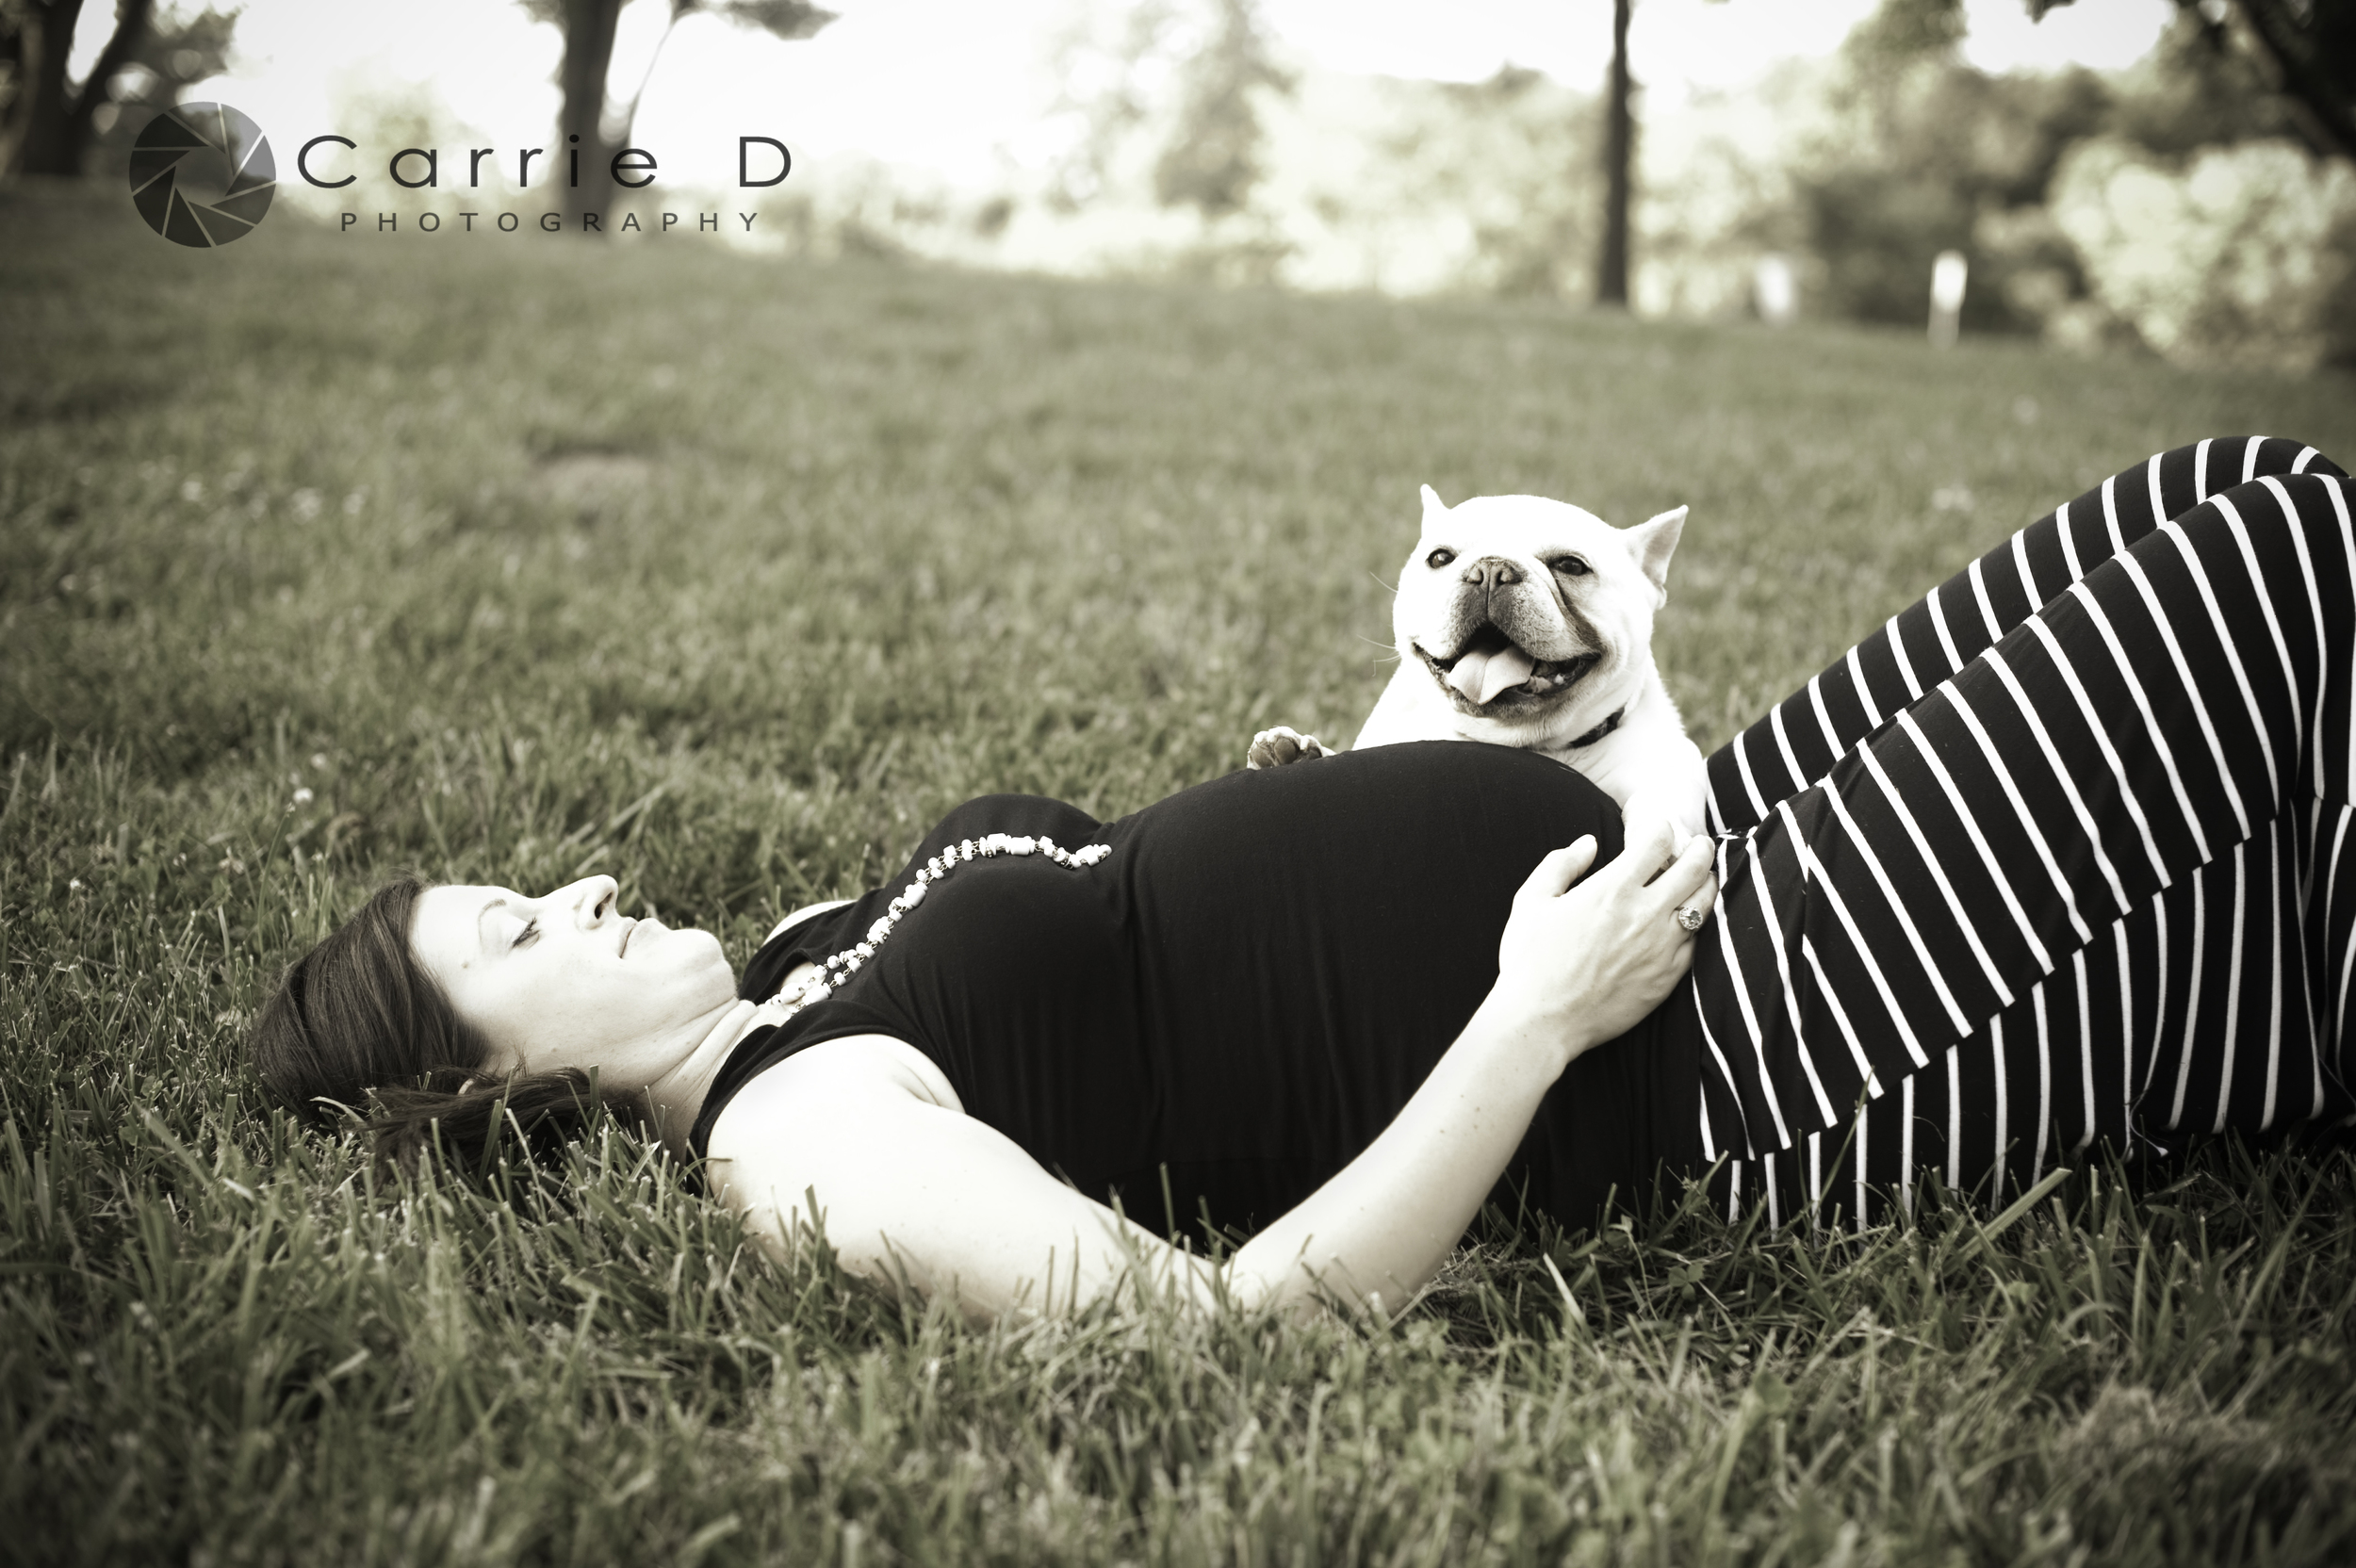 Westminster Photographer - Westminster MD Photographer - Westminster Maternity Photographer - Westminster MD Maternity Photographer - Westminster Natural Light Photographer - Westminster MD Natural Light Photographer - Westminster Family Photographer - Westminster MD Family Photographer - Westminster Pet Photographer - Westminster MD Pet Photographer